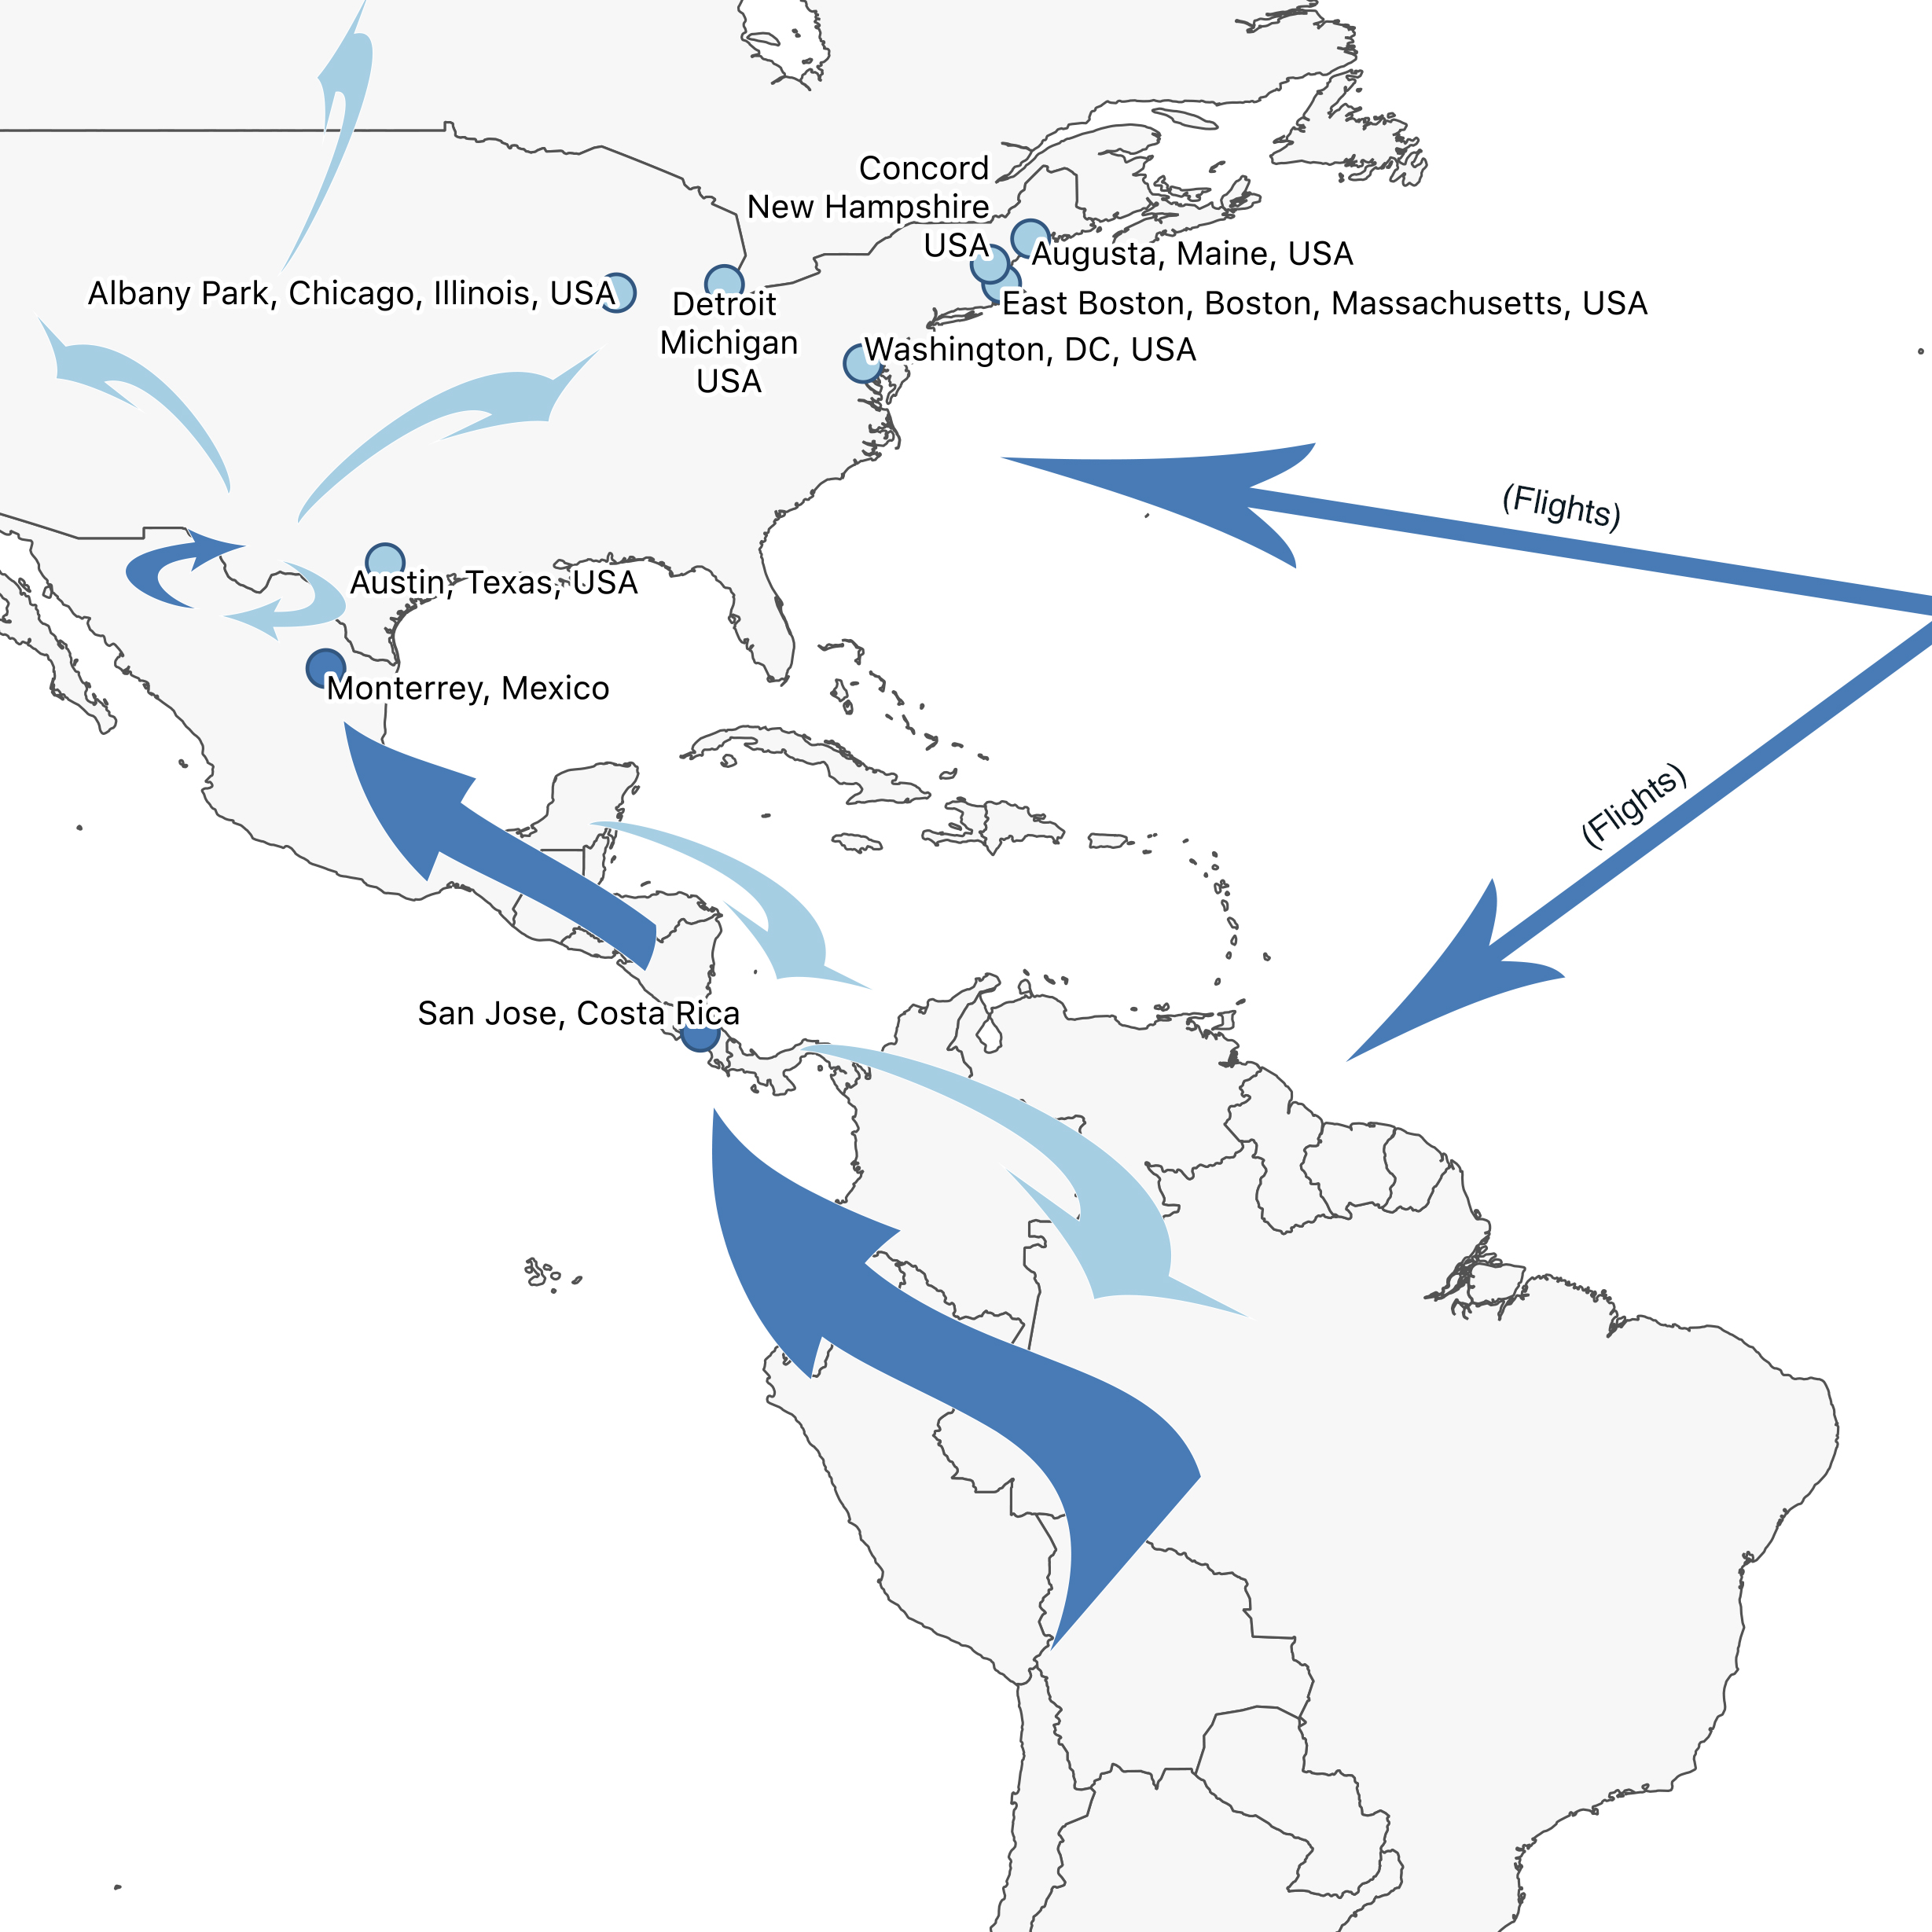 Dark blue indicates initial migrations by plane to the Americas, and northward movement. Light blue indicates internal, circular, or return migrations.